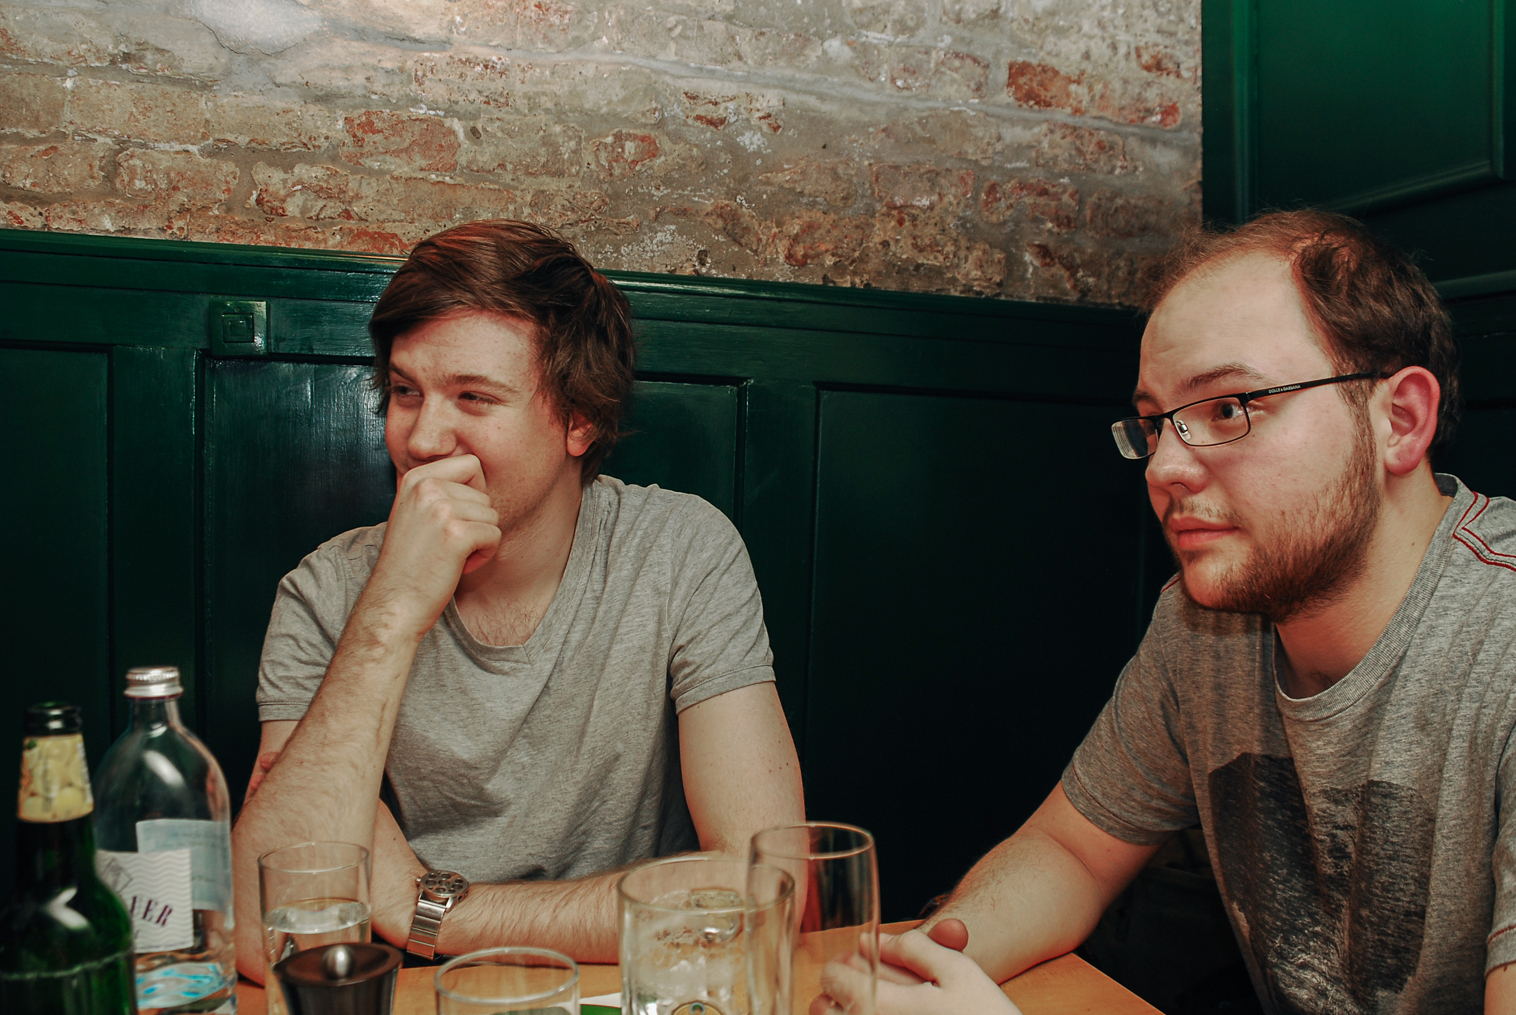 Tom and myself hearing stories from Ian